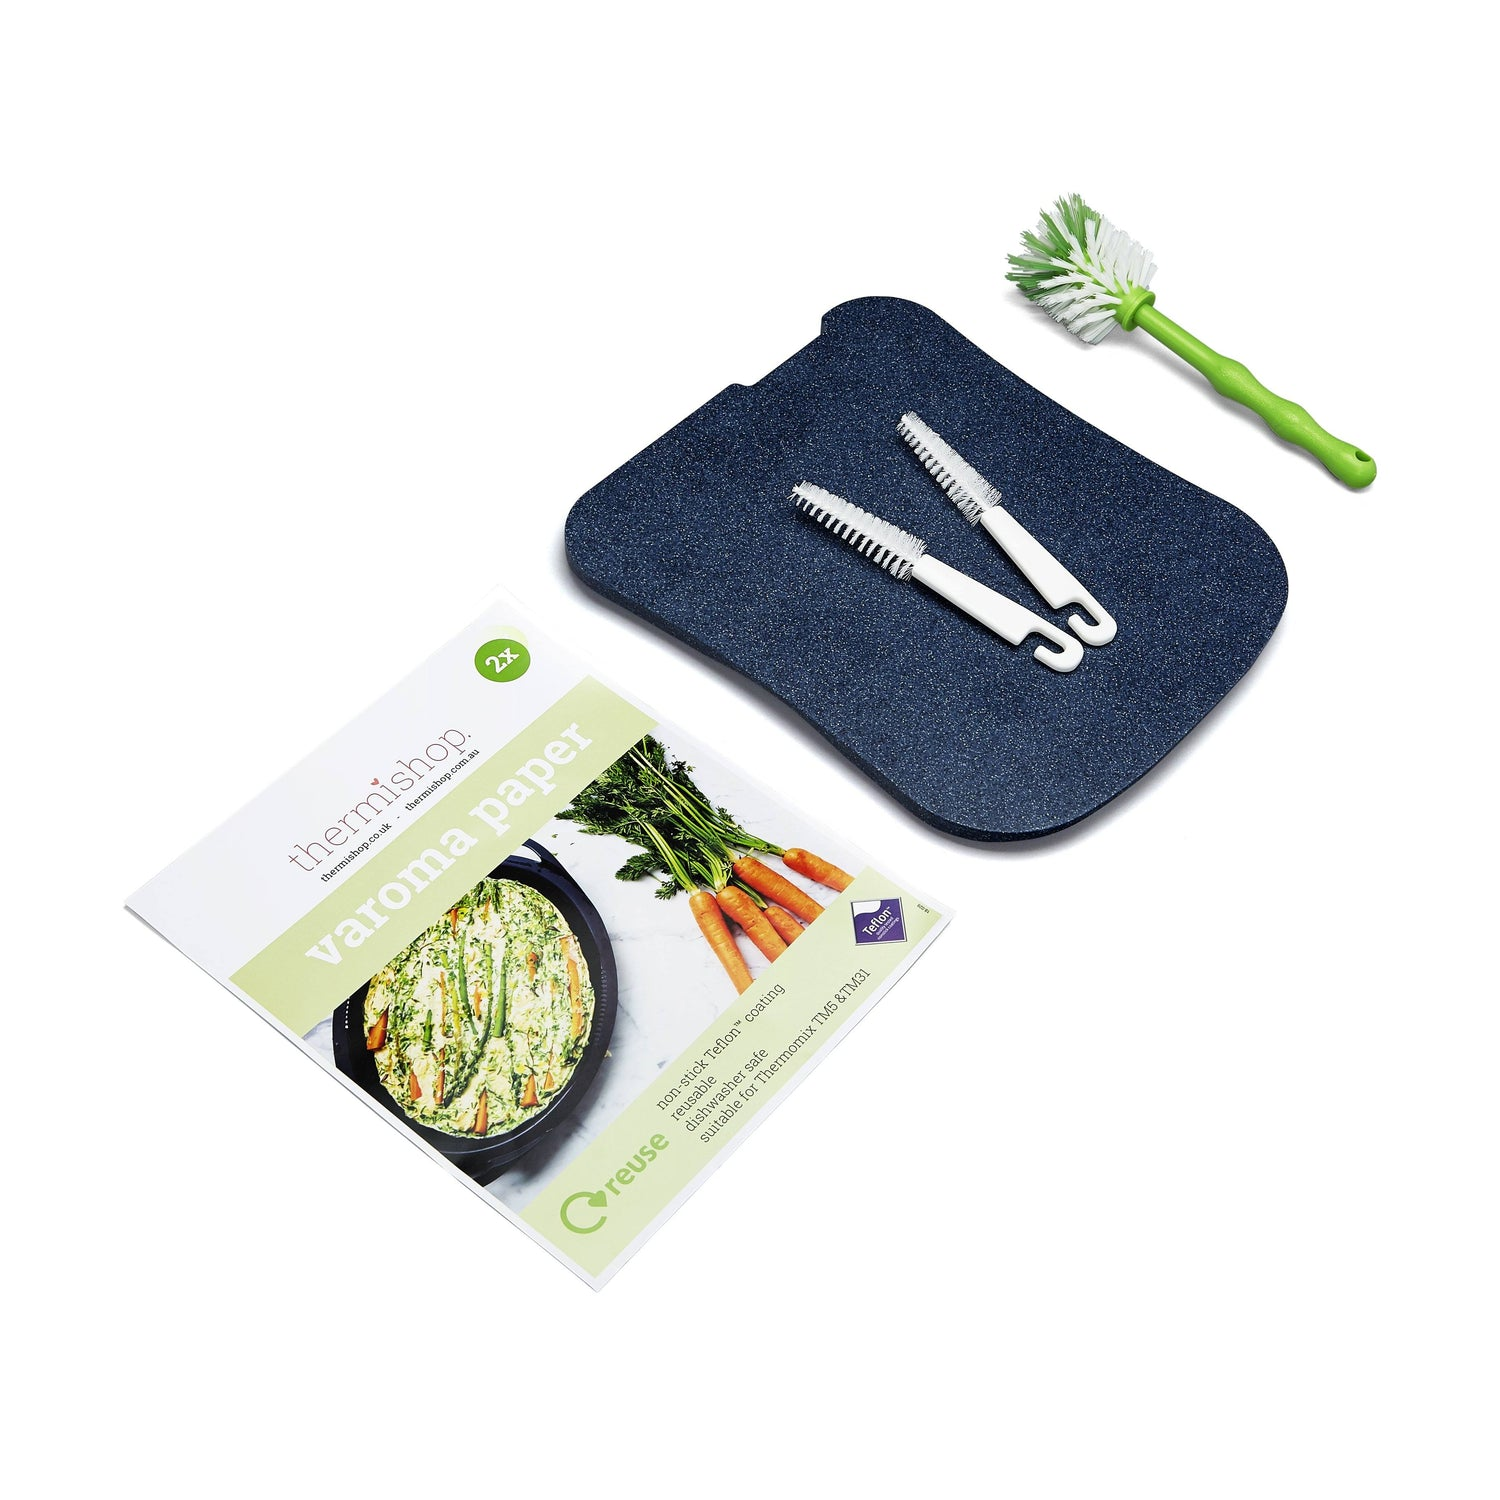 Starter Bundle for Thermomix  - Blue - thermishop.com.au